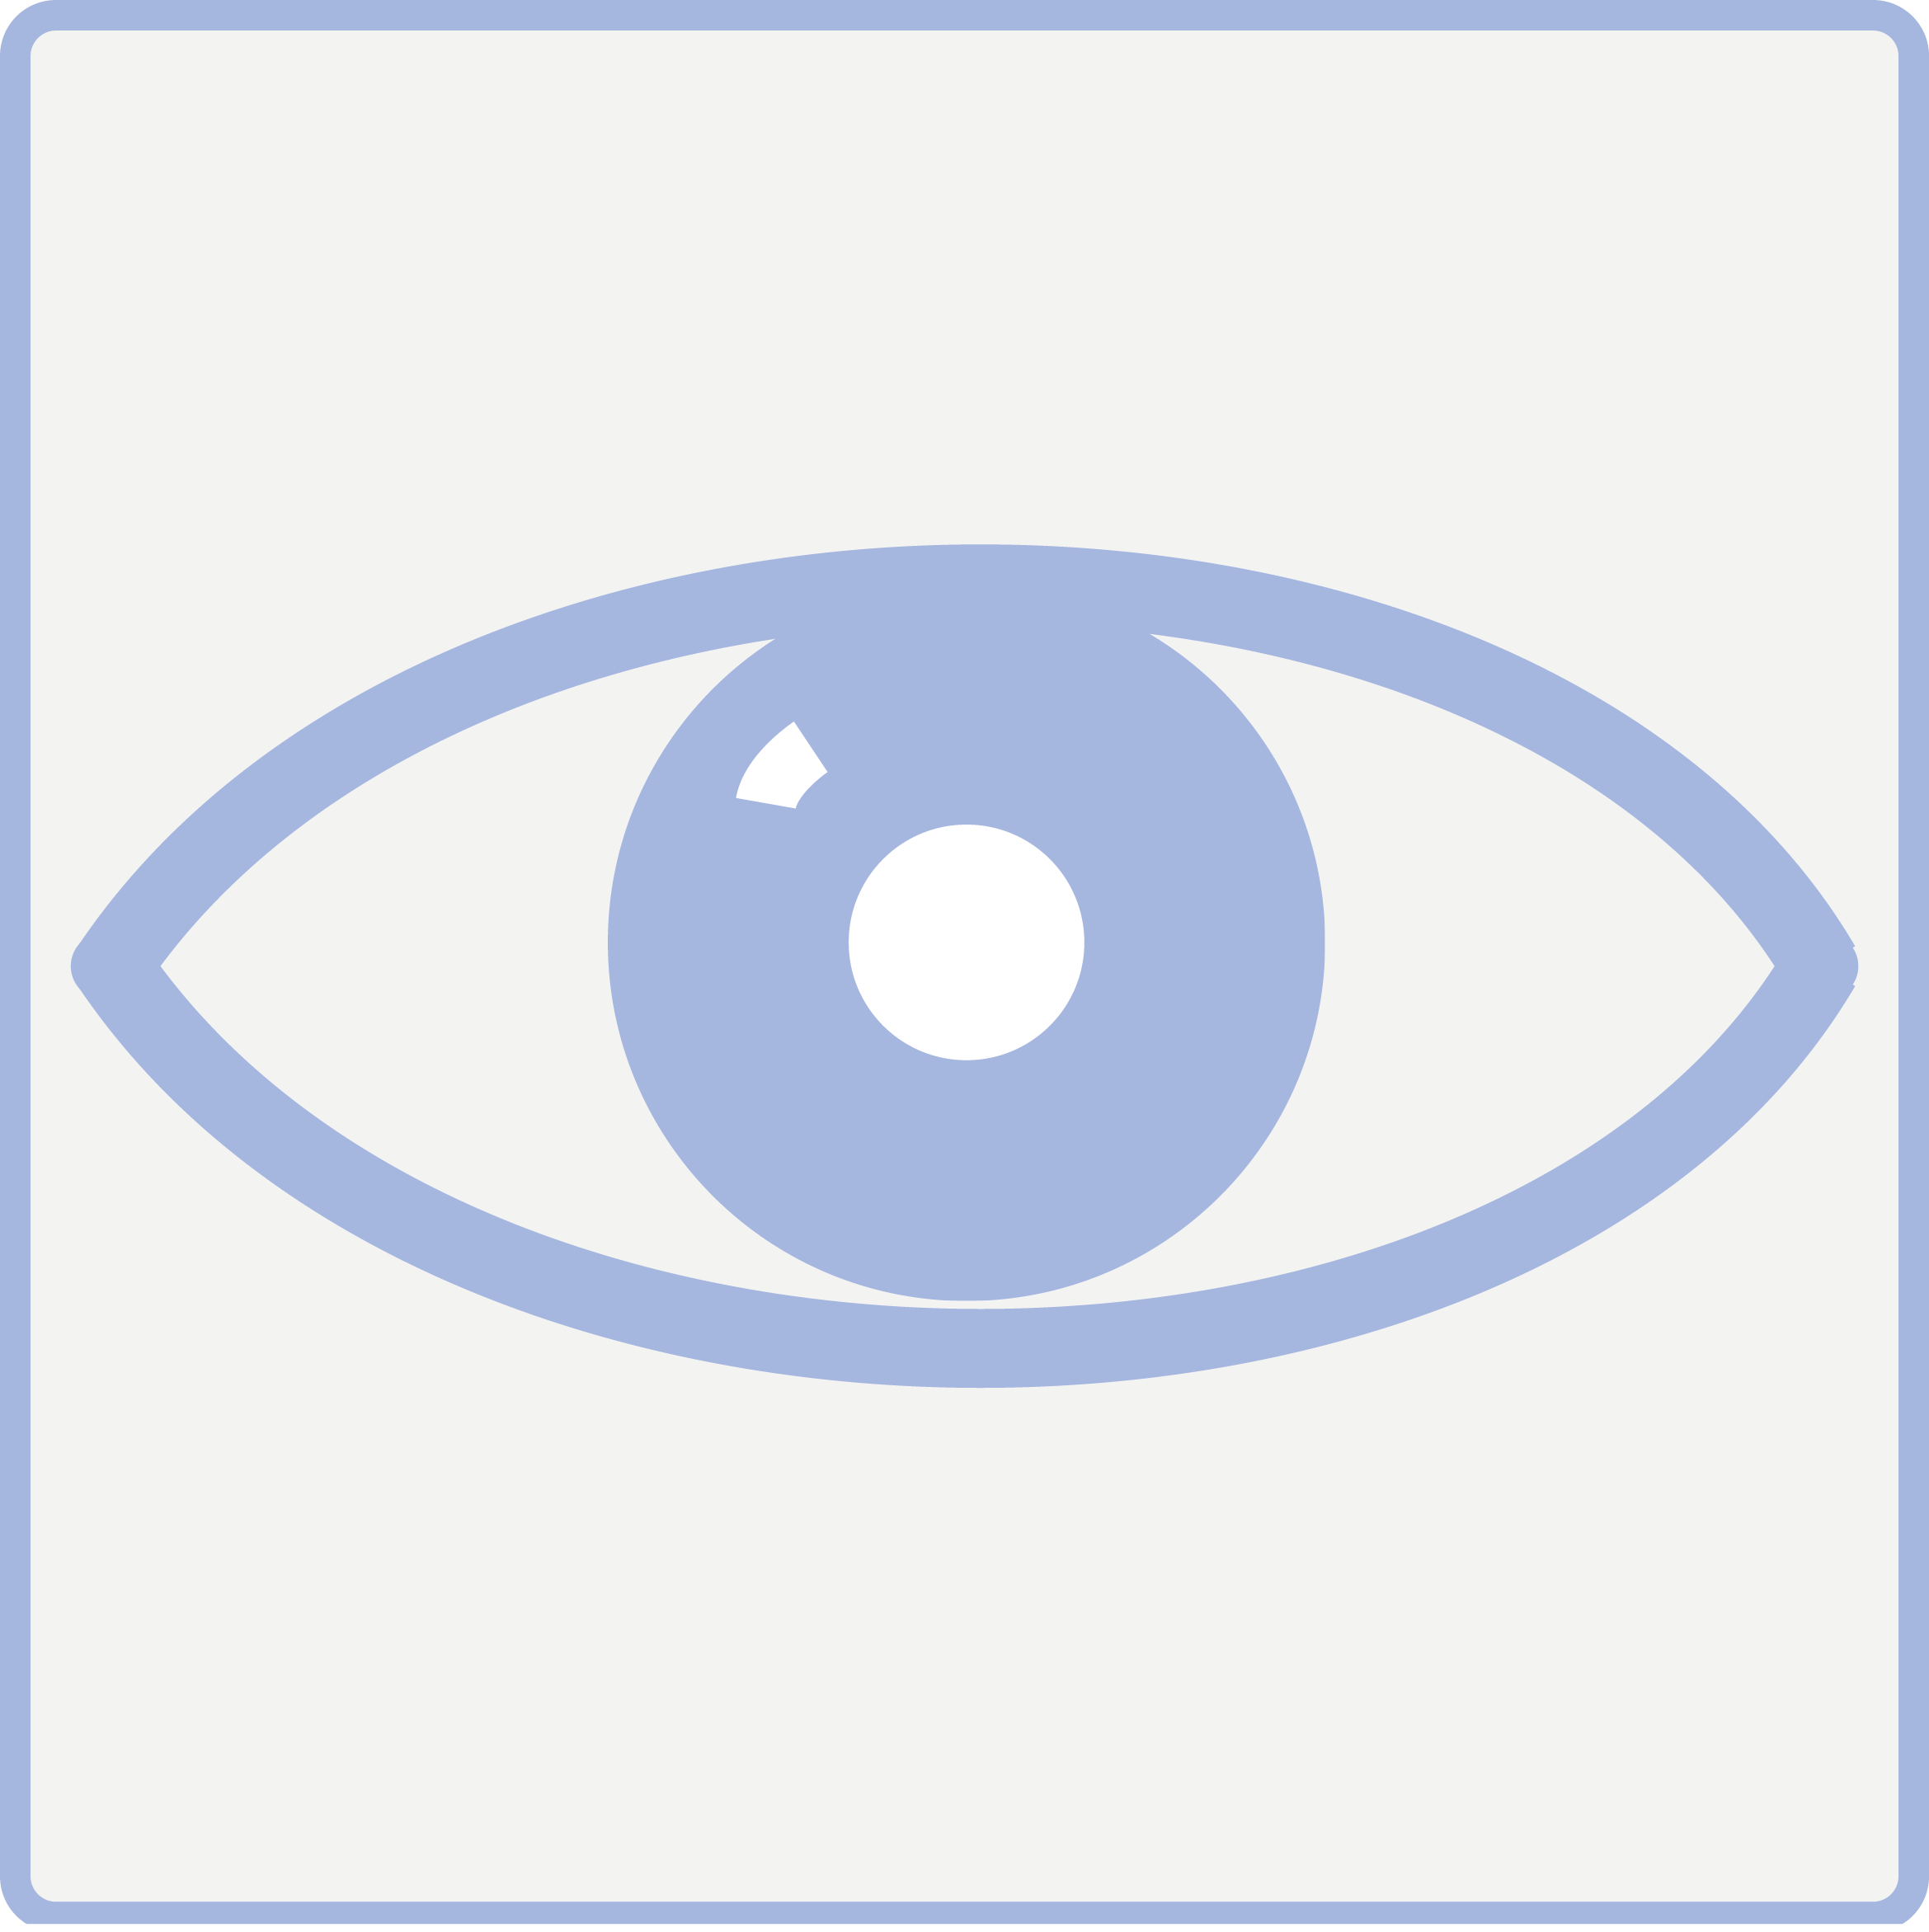 Overview on Basic Eye Diagram